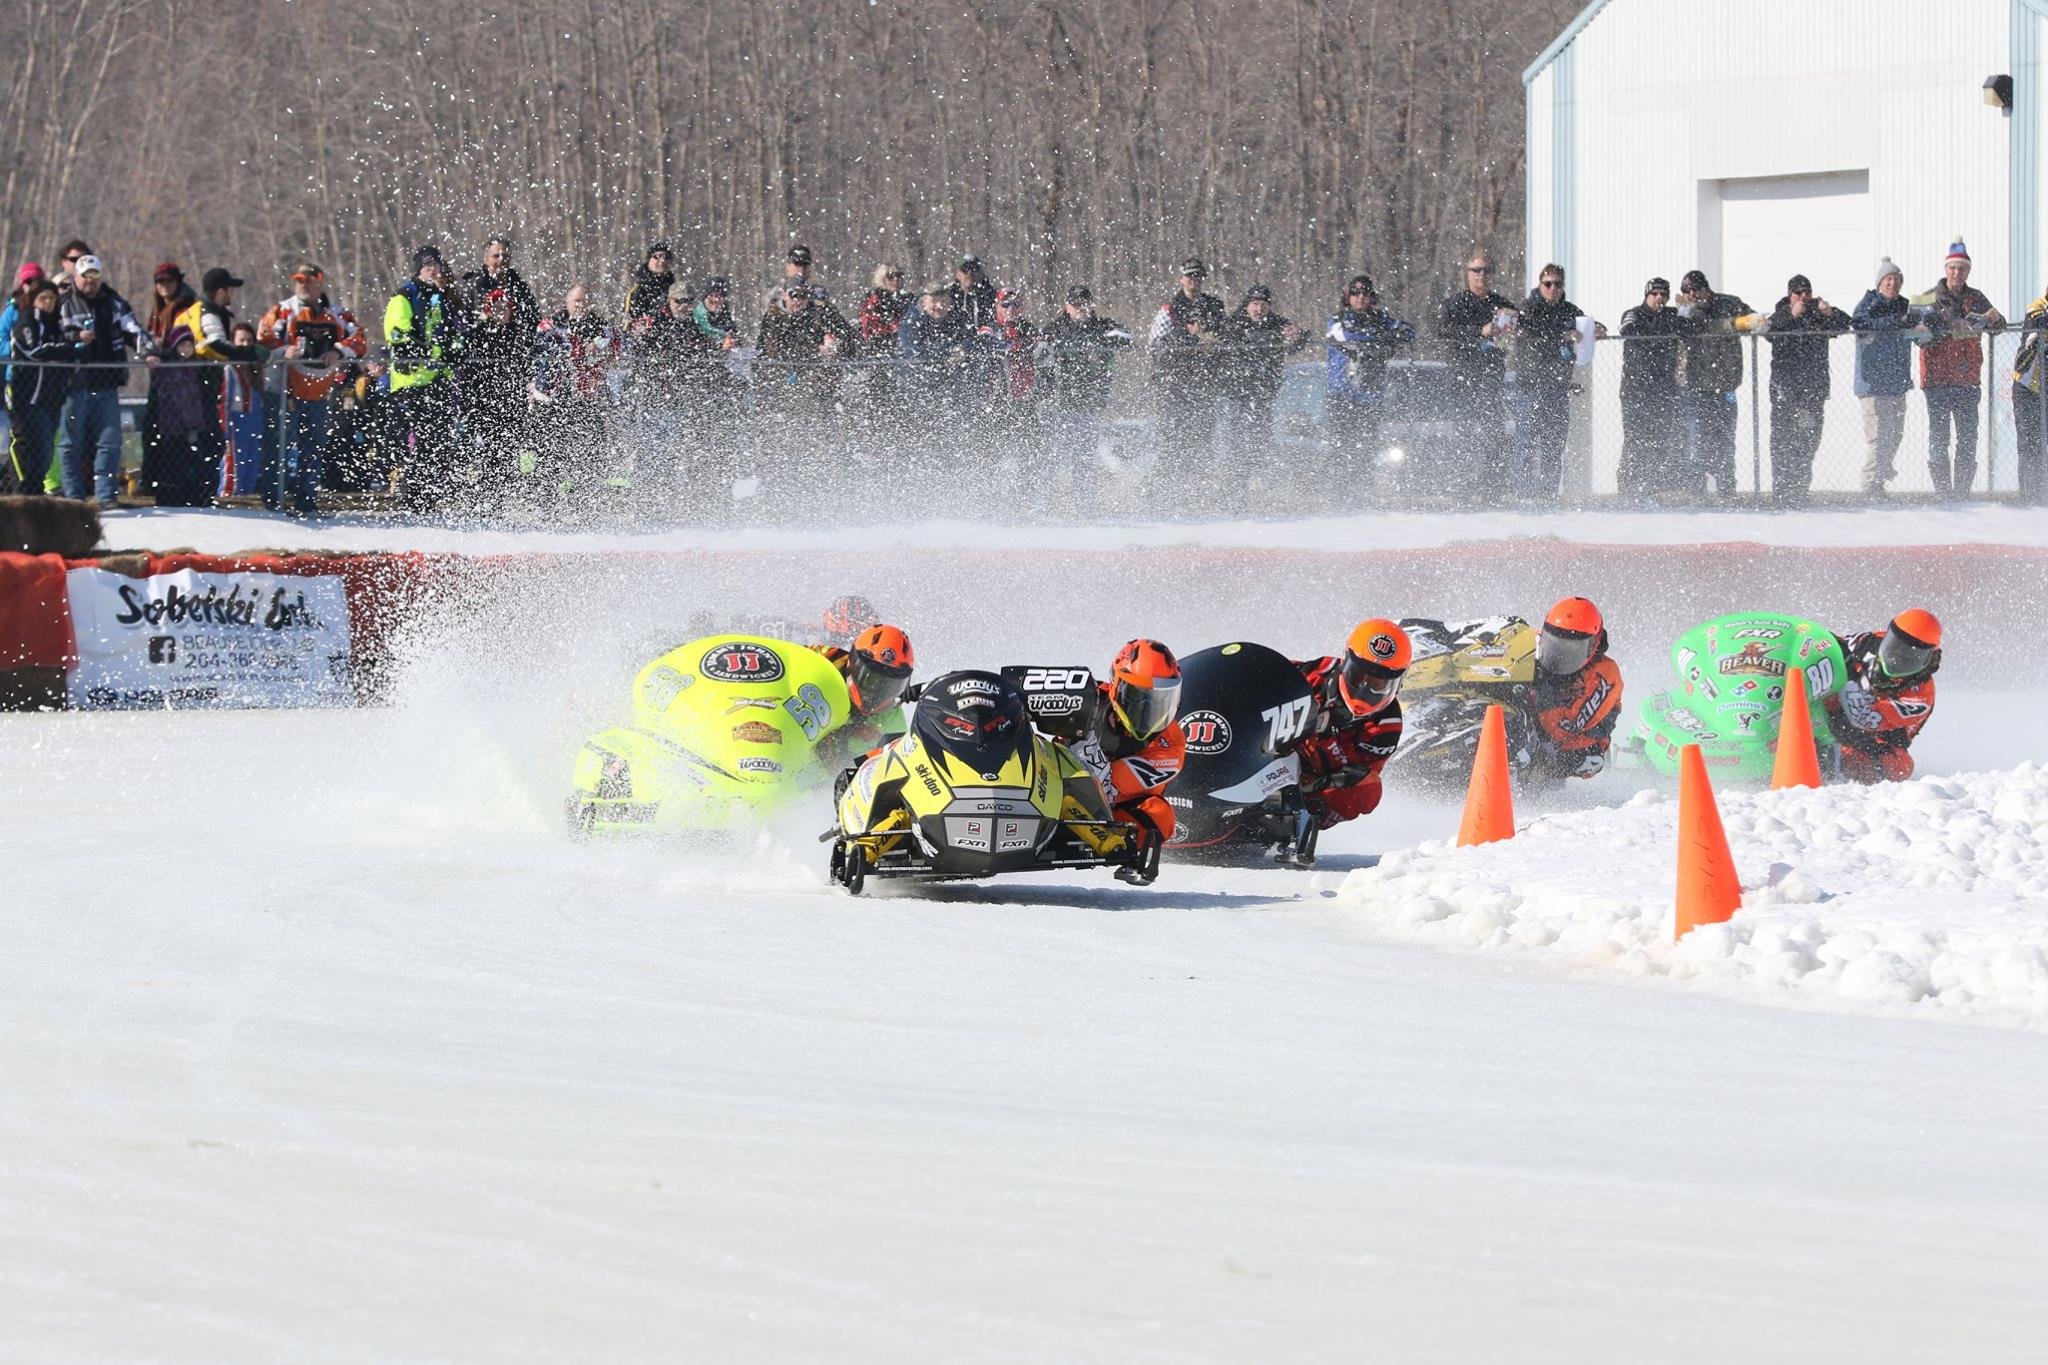 The Fastest Snowmobiles in the world are coming to BEAUSEJOUR!!